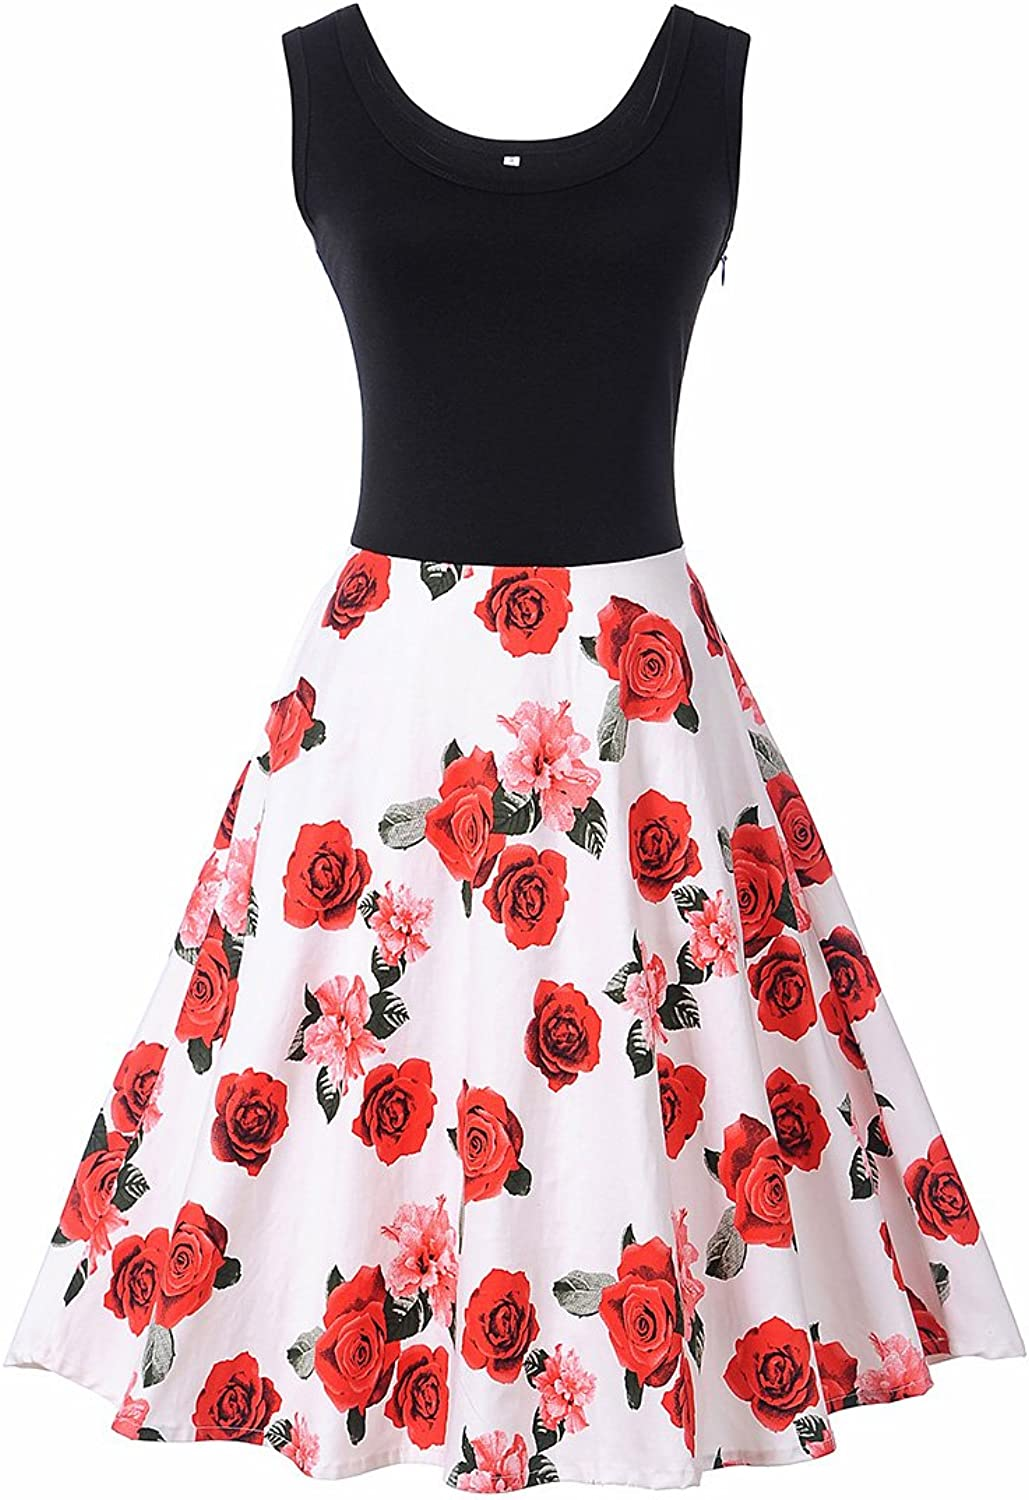 Coswe Women's Sleeveless Midi Dress Scoop Neck Vintage Floral Cocktail Party Dress